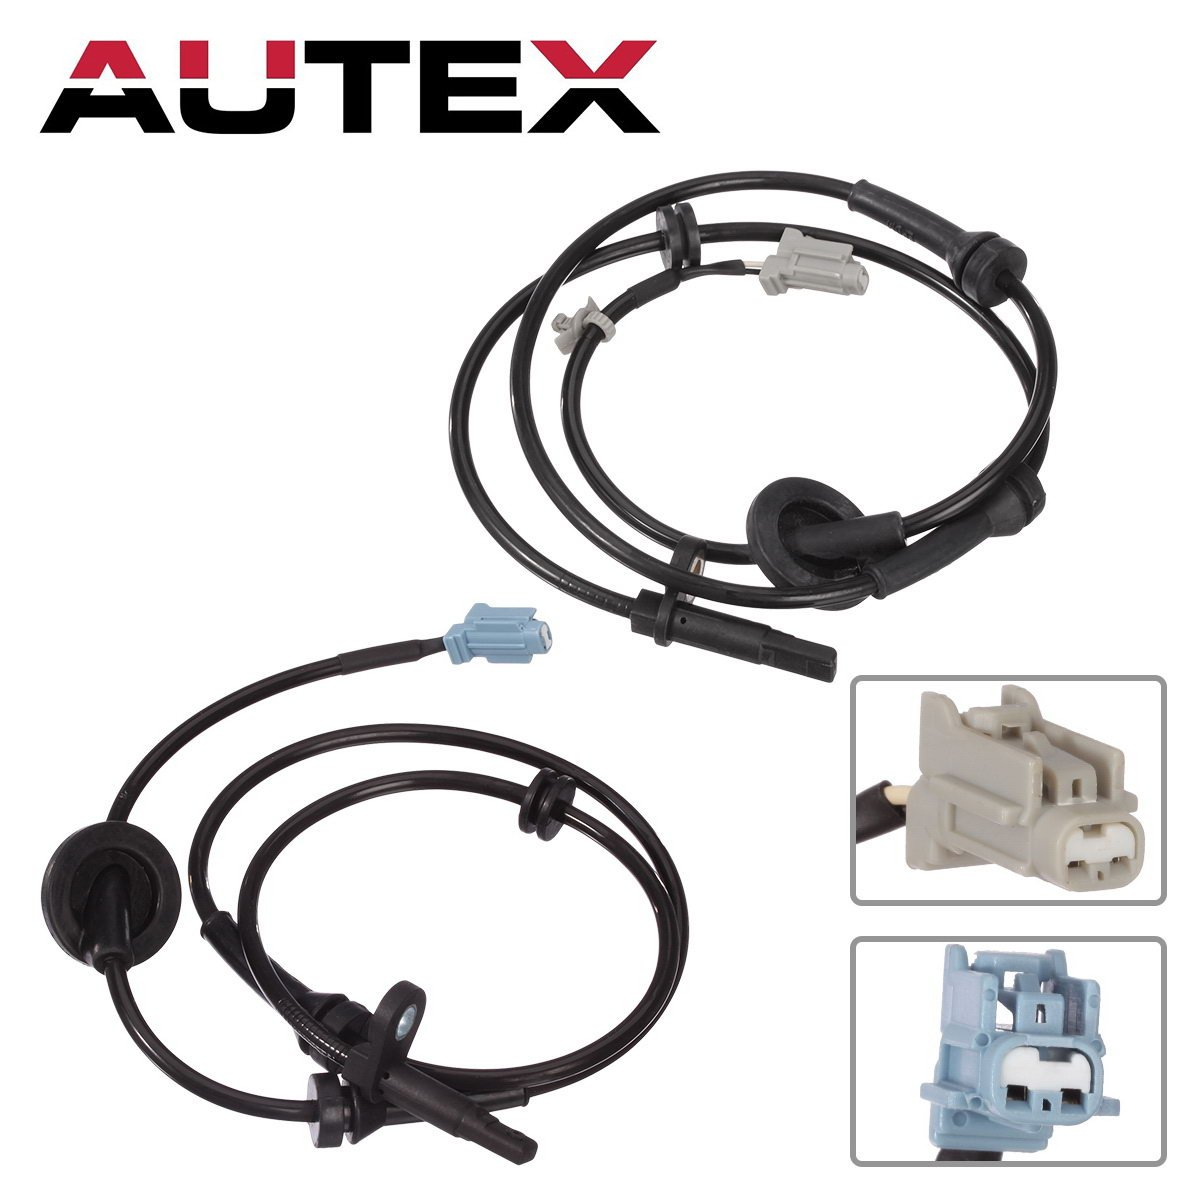 AUTEX 2PCS ABS Wheel Speed Sensor Front Left & Right ALS286 ALS290 47911-CA000 47910-CA000 compatible with 2004 2005 2006 2007 2008 Nissan Murano 3.5L 04 05 06 07 08 Nissan Murano 3.5L